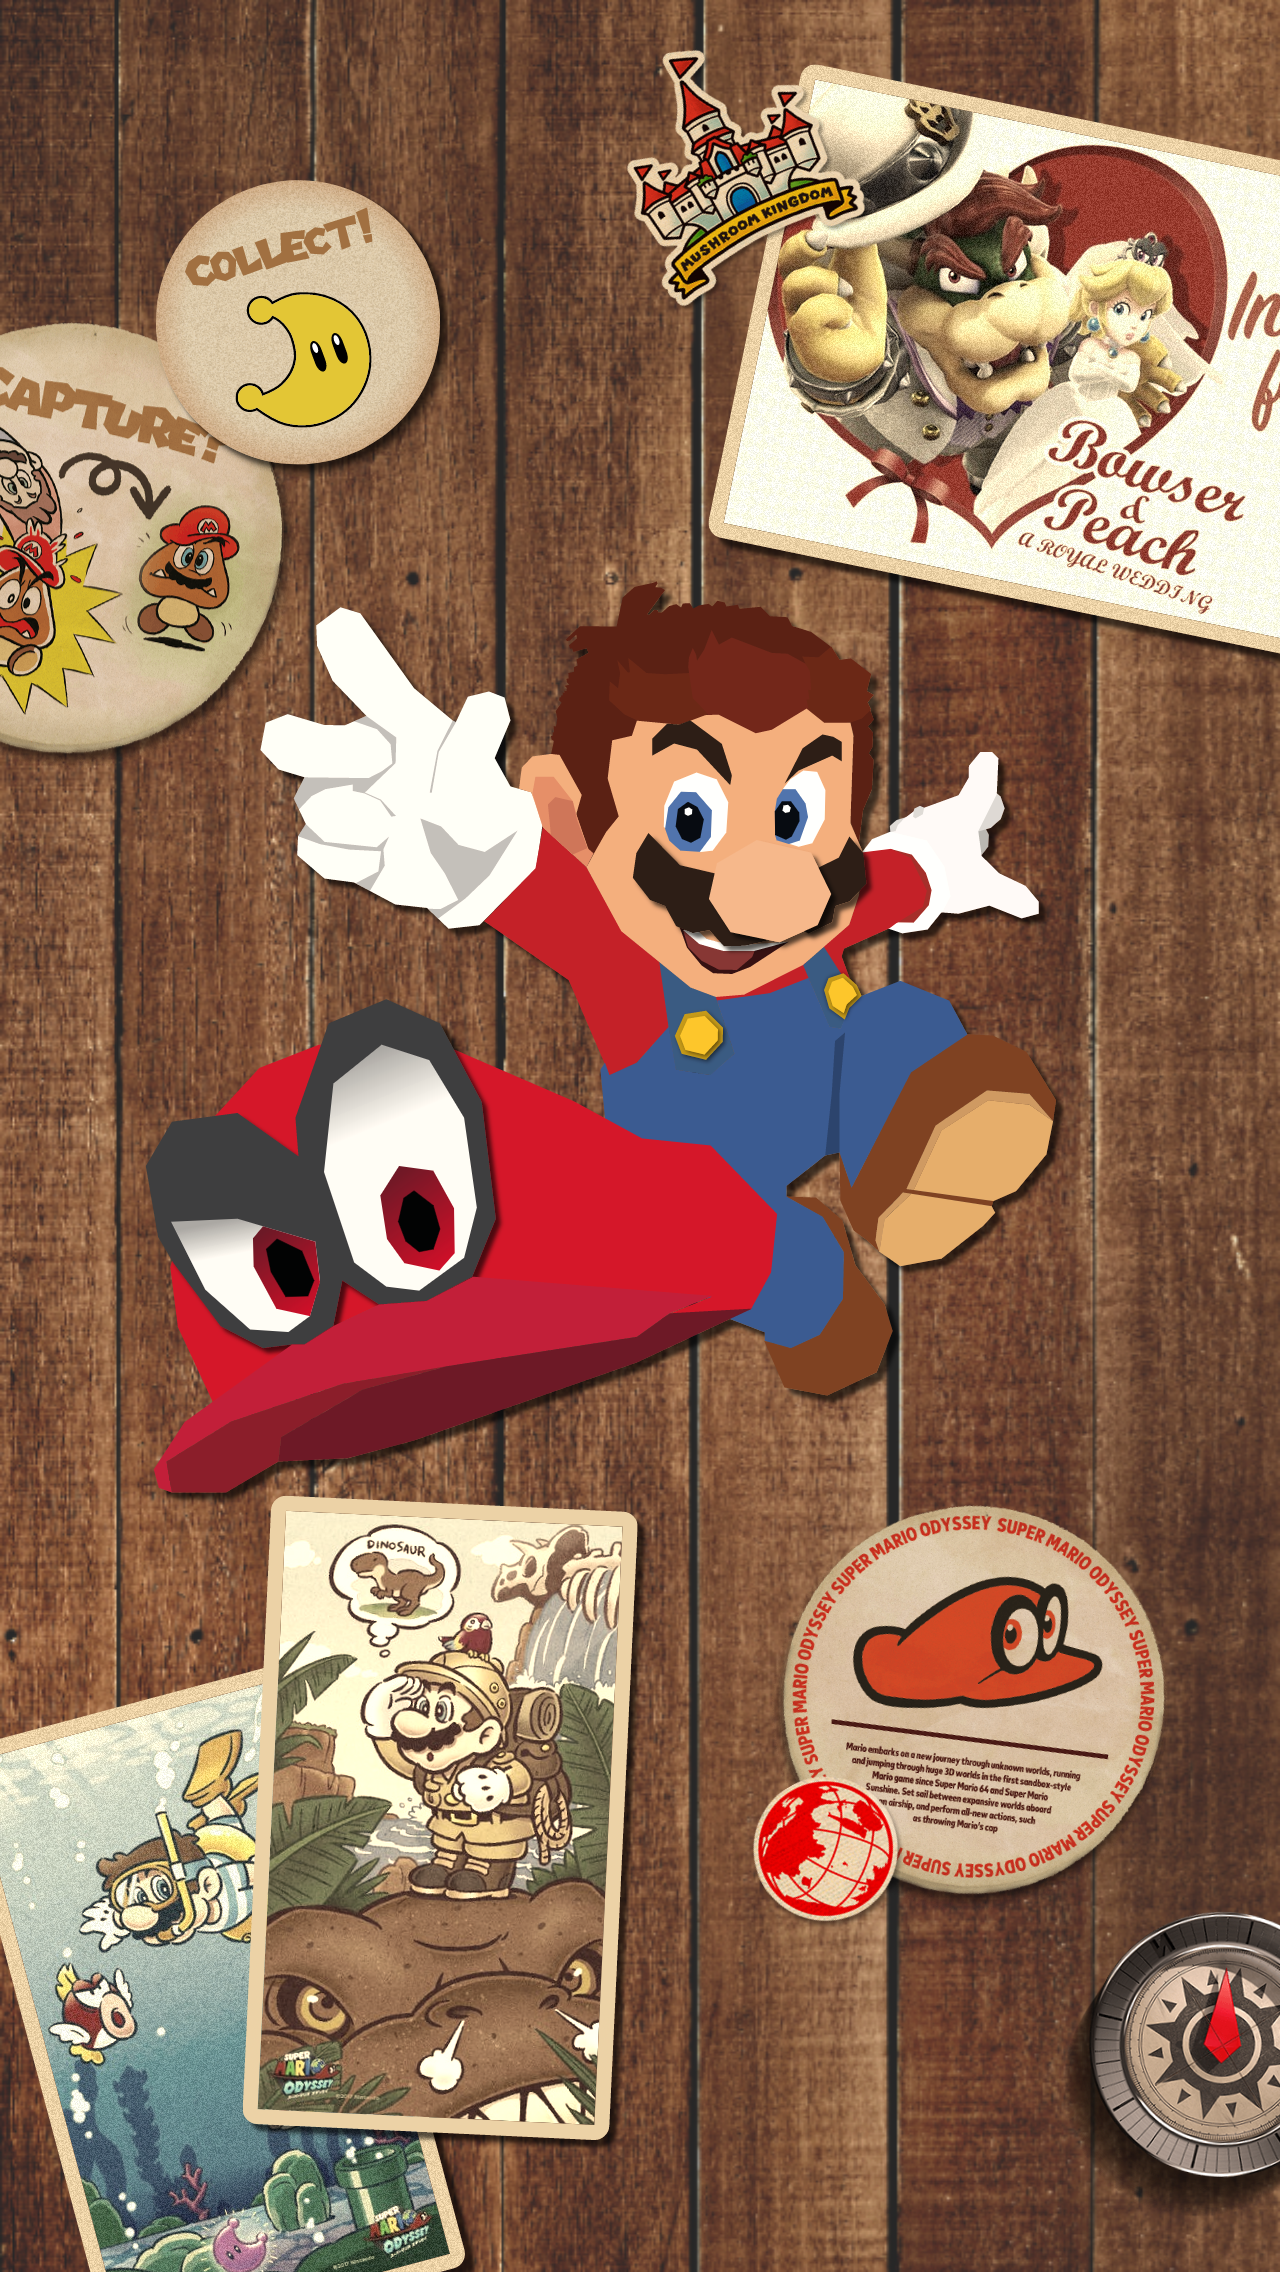 I Made A Super Mario Odyssey Wallpaper With The Style From The